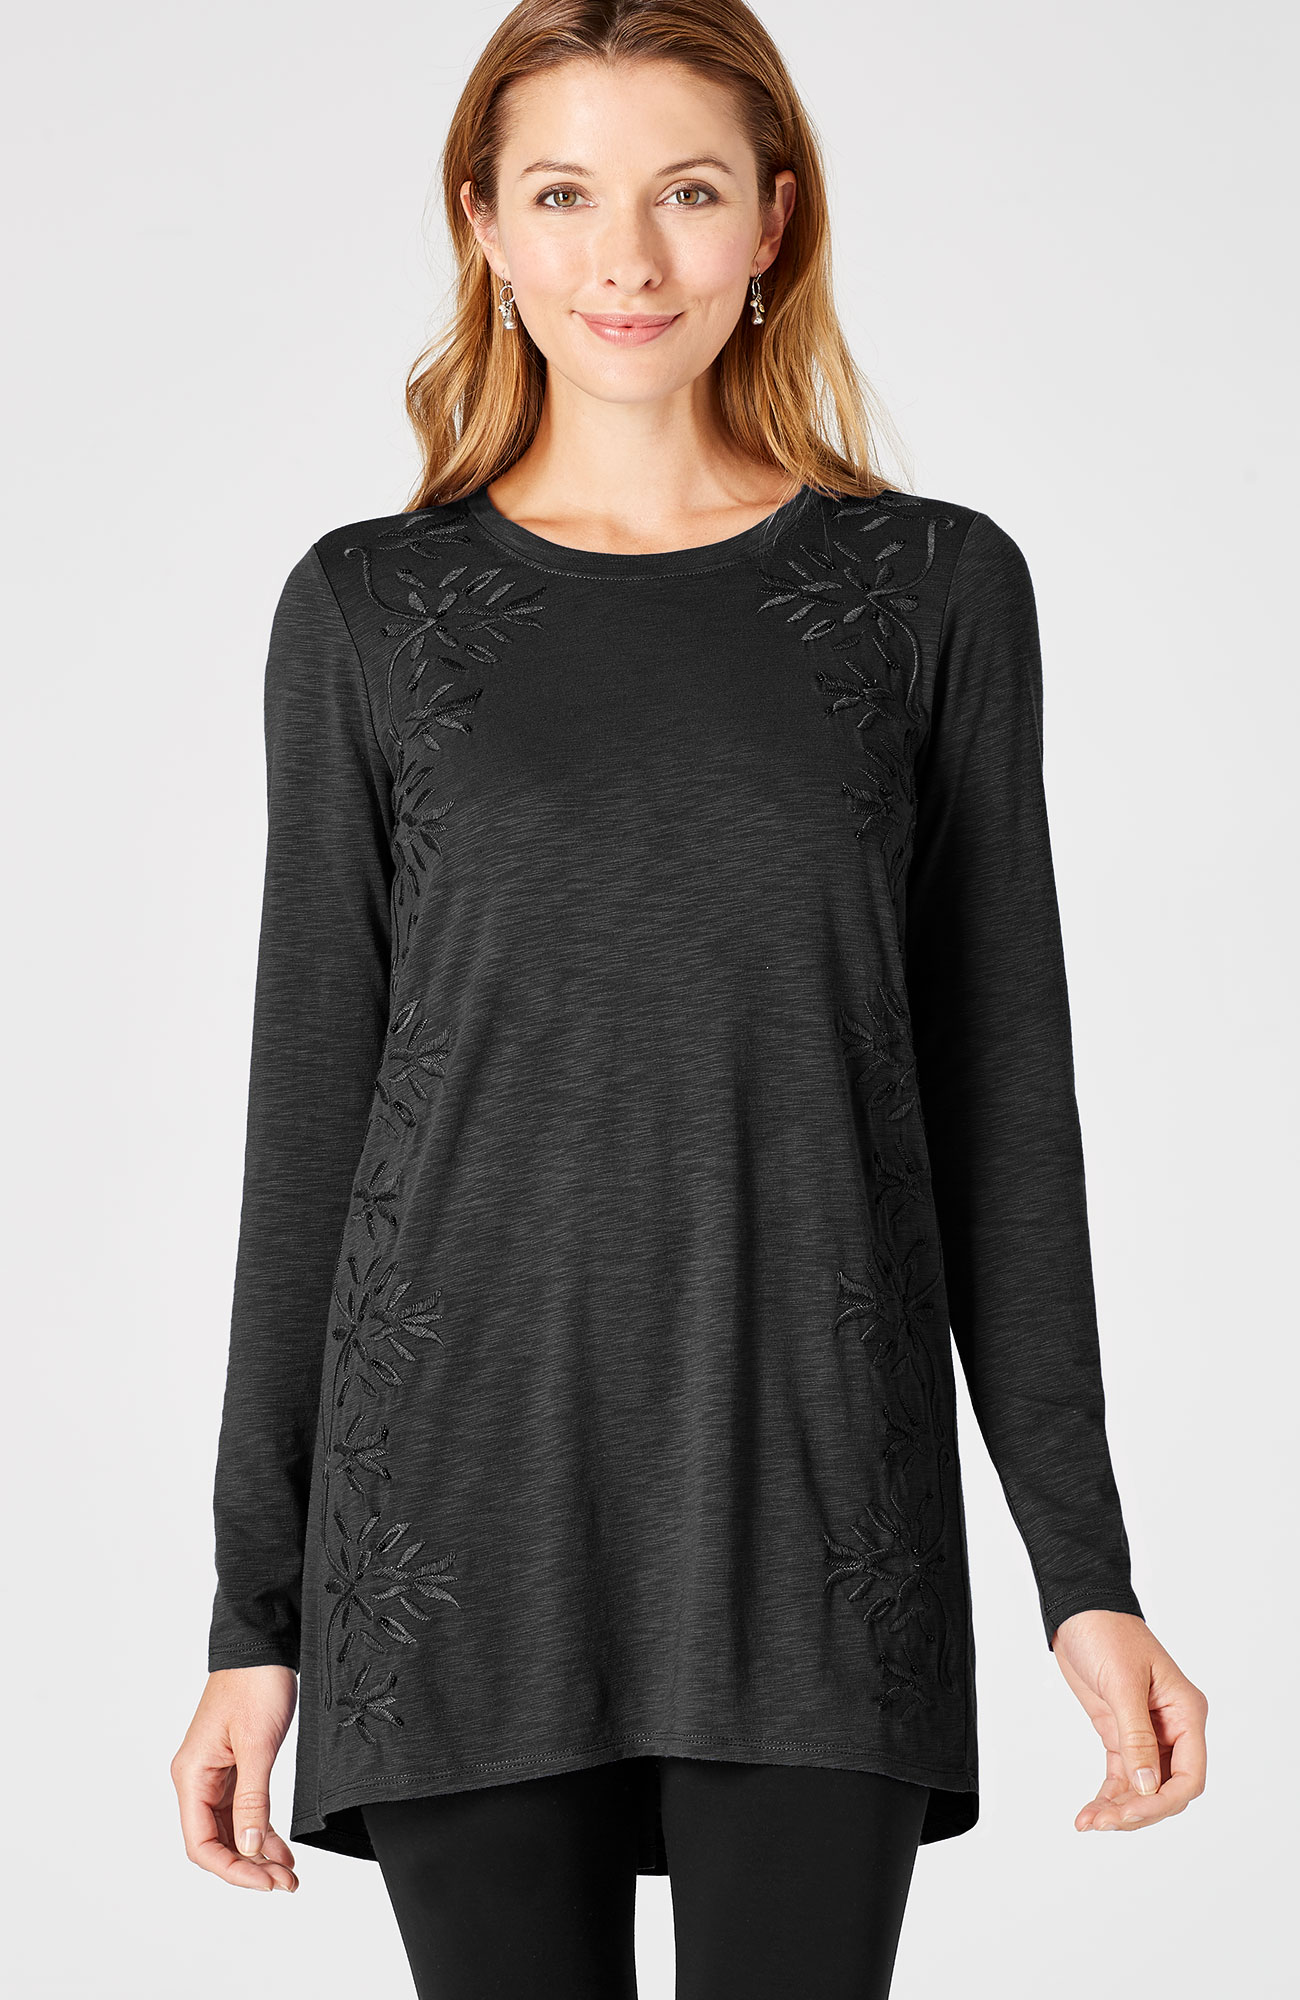 embroidered & beaded knit tunic